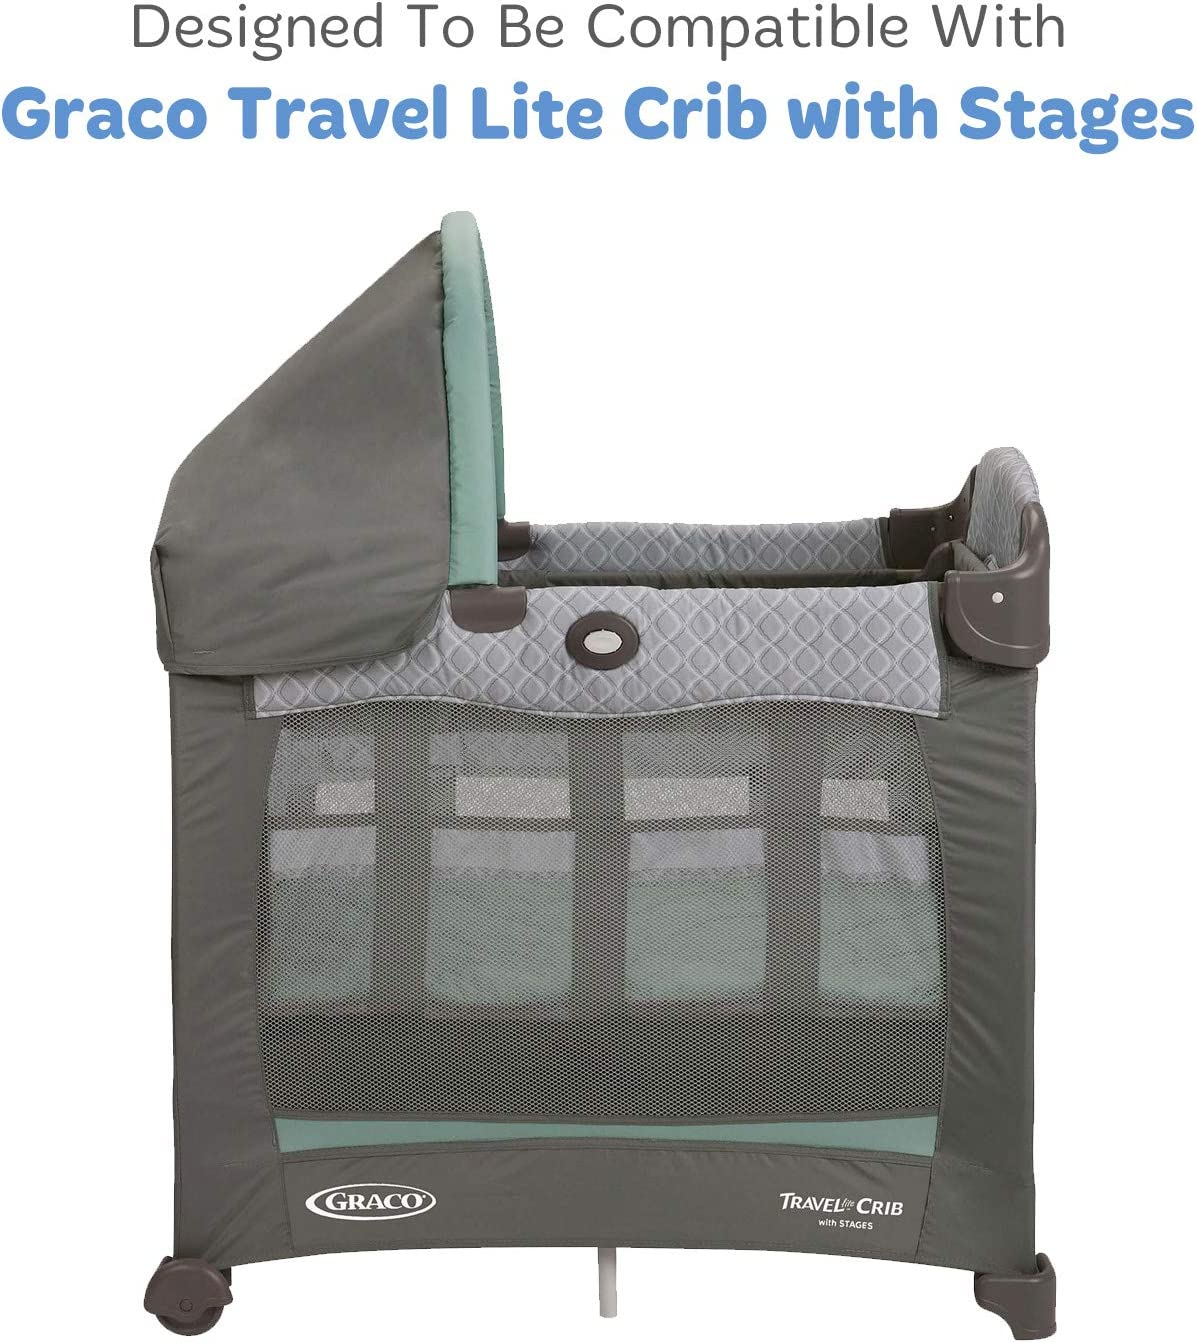 """2 Pack Travel Lite Crib Sheets Compatible with Graco Travel Lite Crib with Stages Fits Perfectly on 20/"""" x 30/"""" Mattress Without Bunching Up Stripe Snuggly Soft Jersey Cotton /Grey Sheep"""